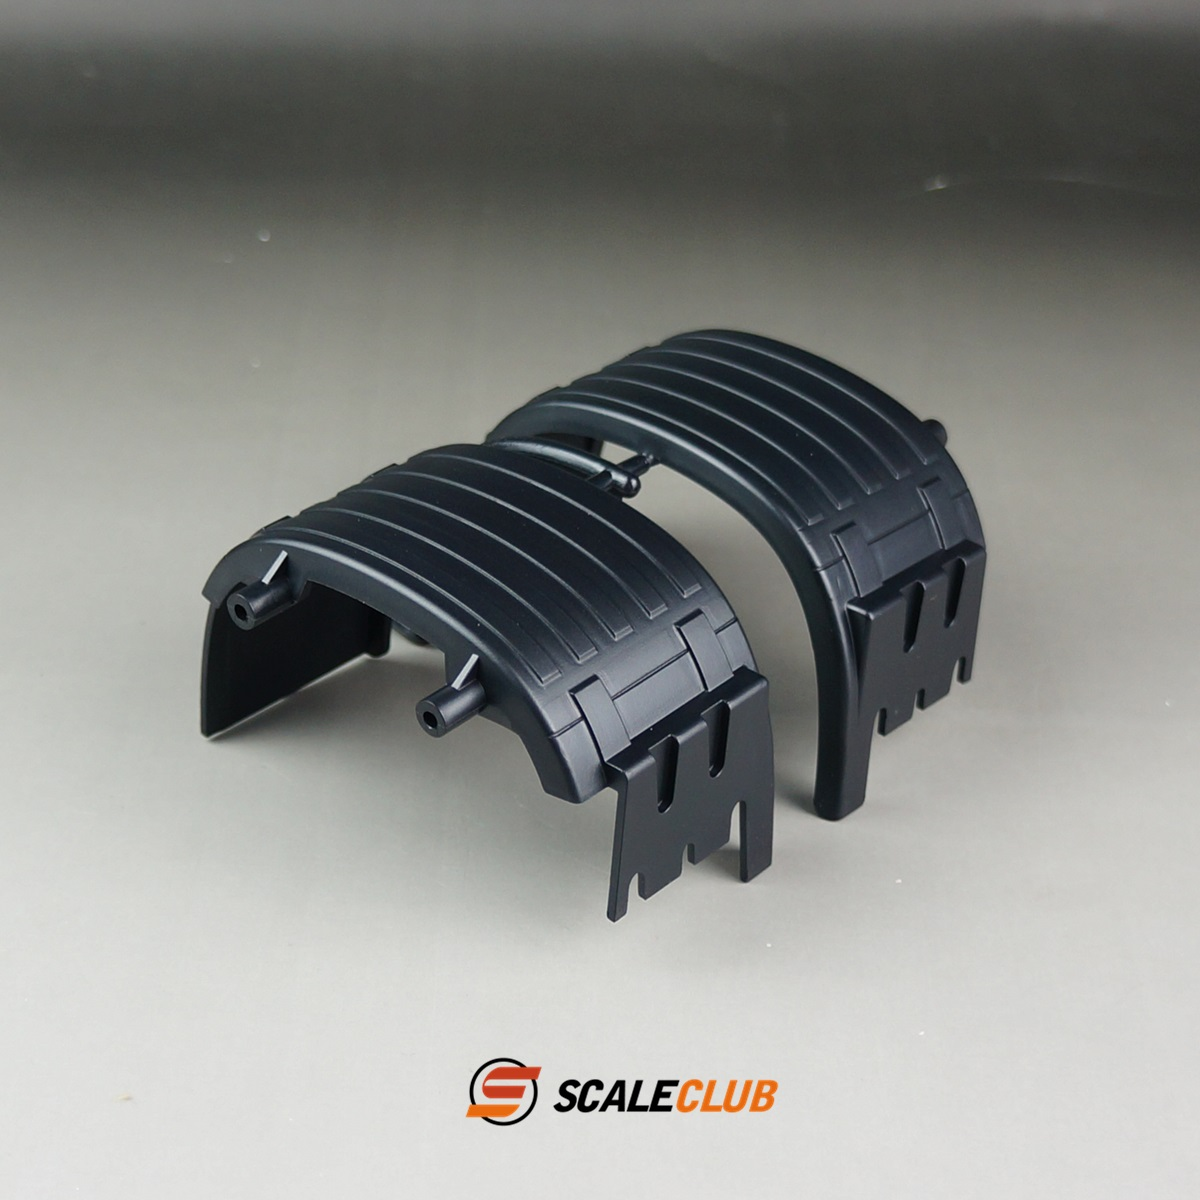 SCALECLUB  1/14 Universal  Single Axis, Two Axis and Single Bearing Fender